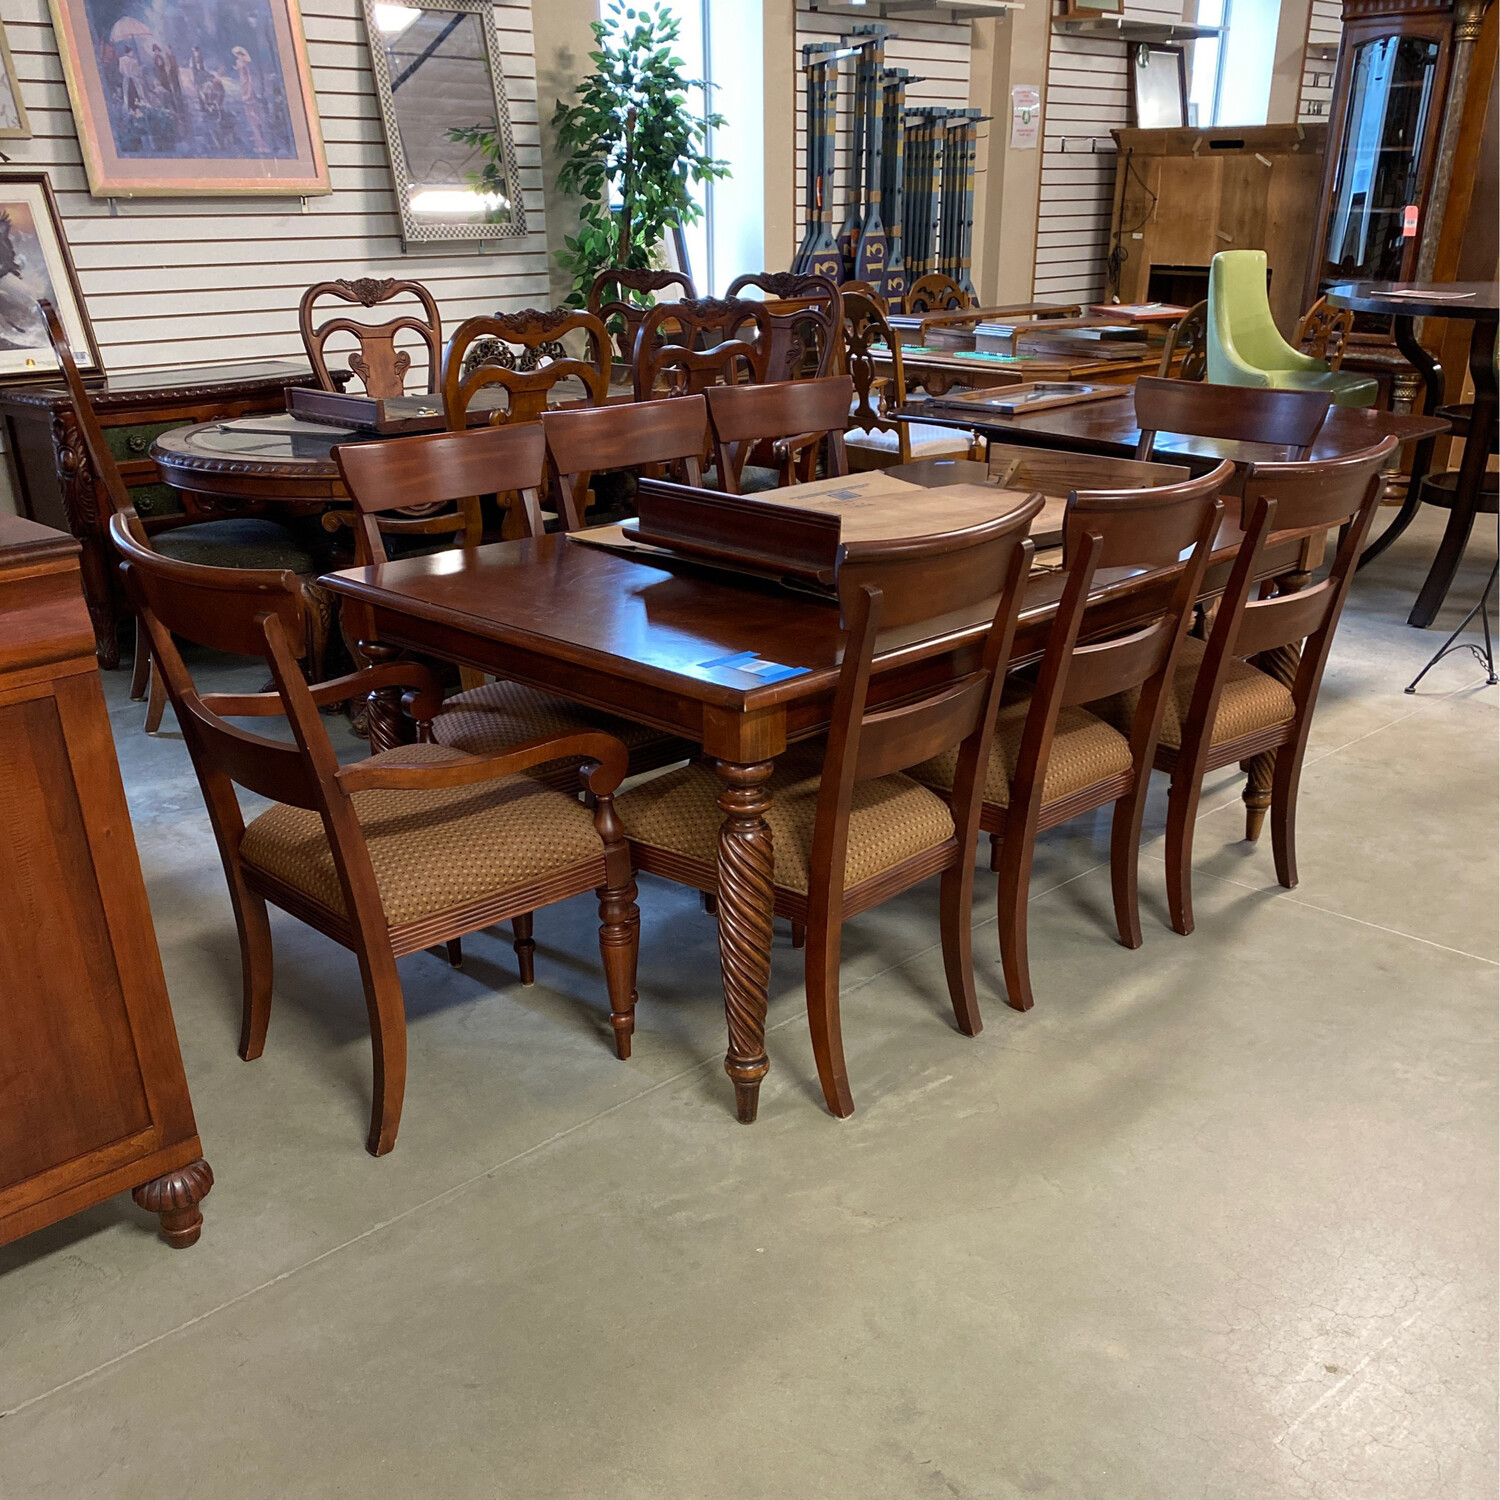 EA FORMAL DINIONG TABLE/8 CHAIRS/1LEAF